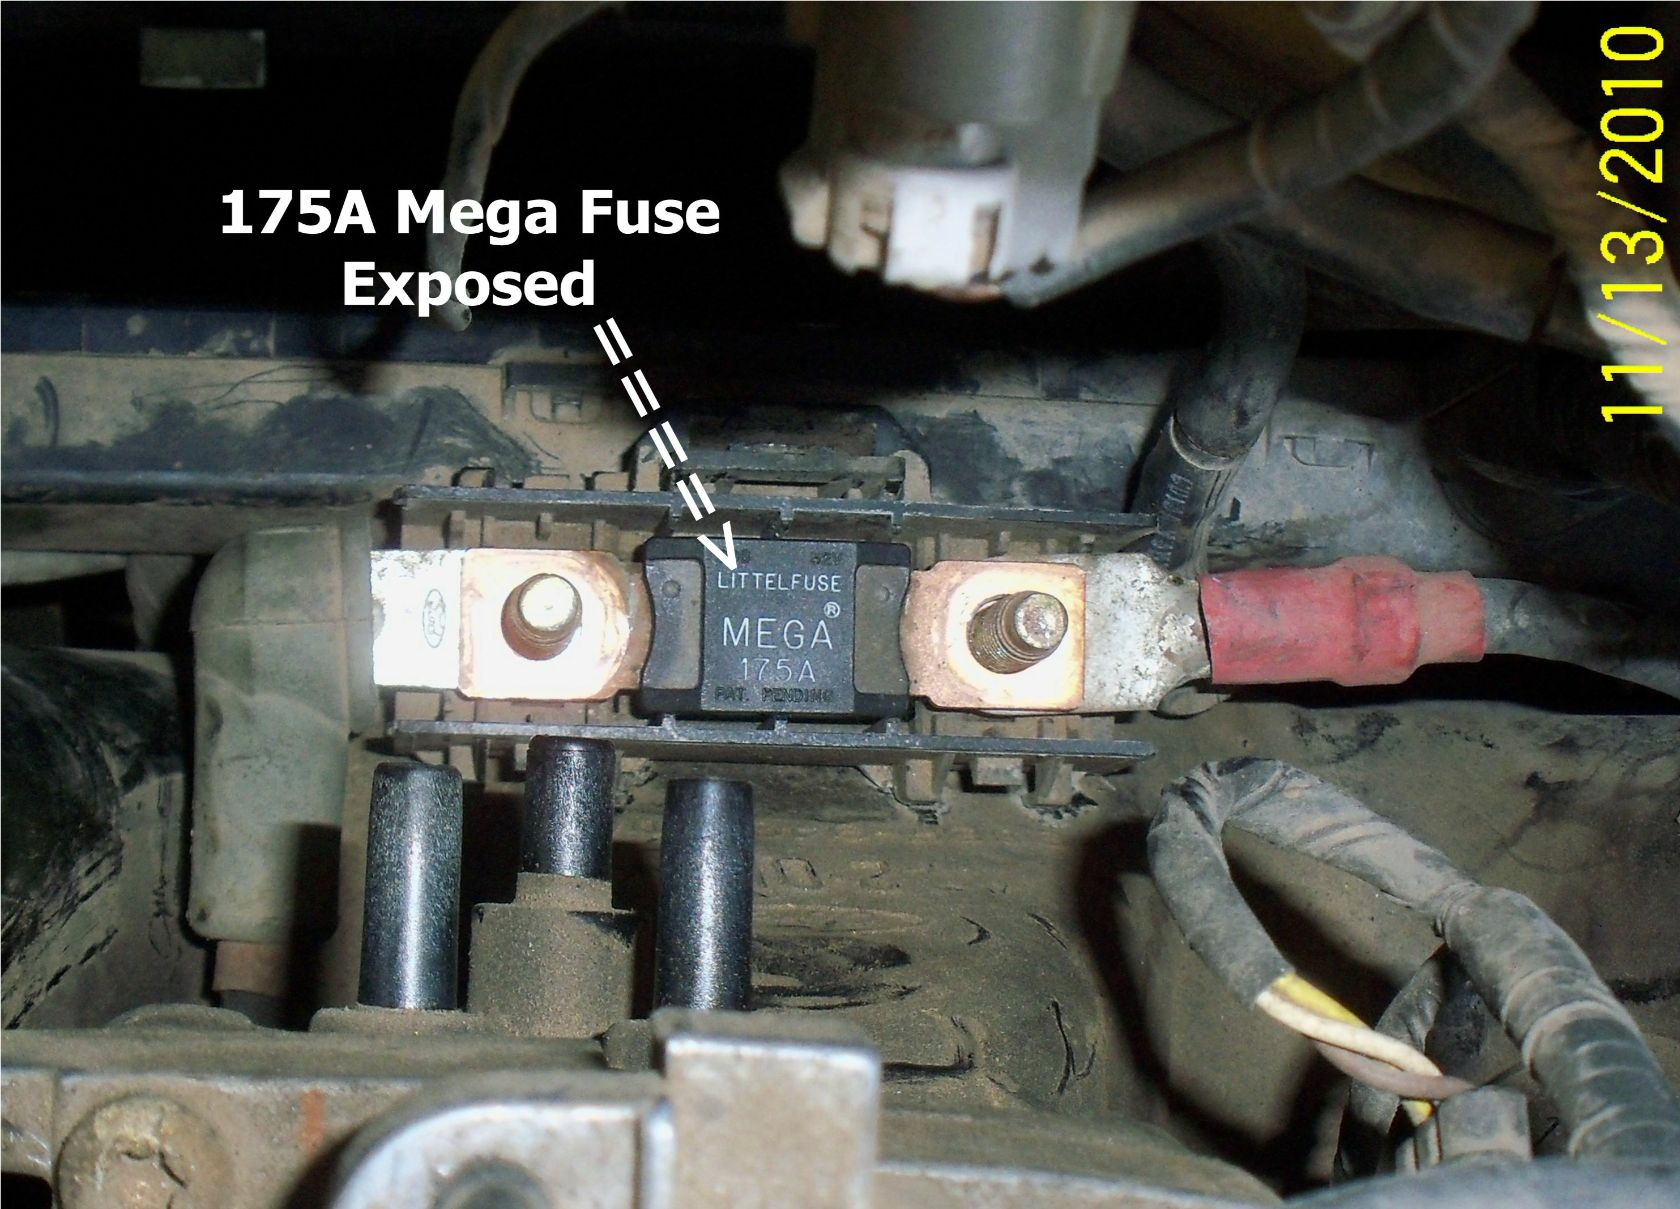 1994 ford taurus fuse panel diagram which fuse is for air conditioner in 2001 ford f150 #9